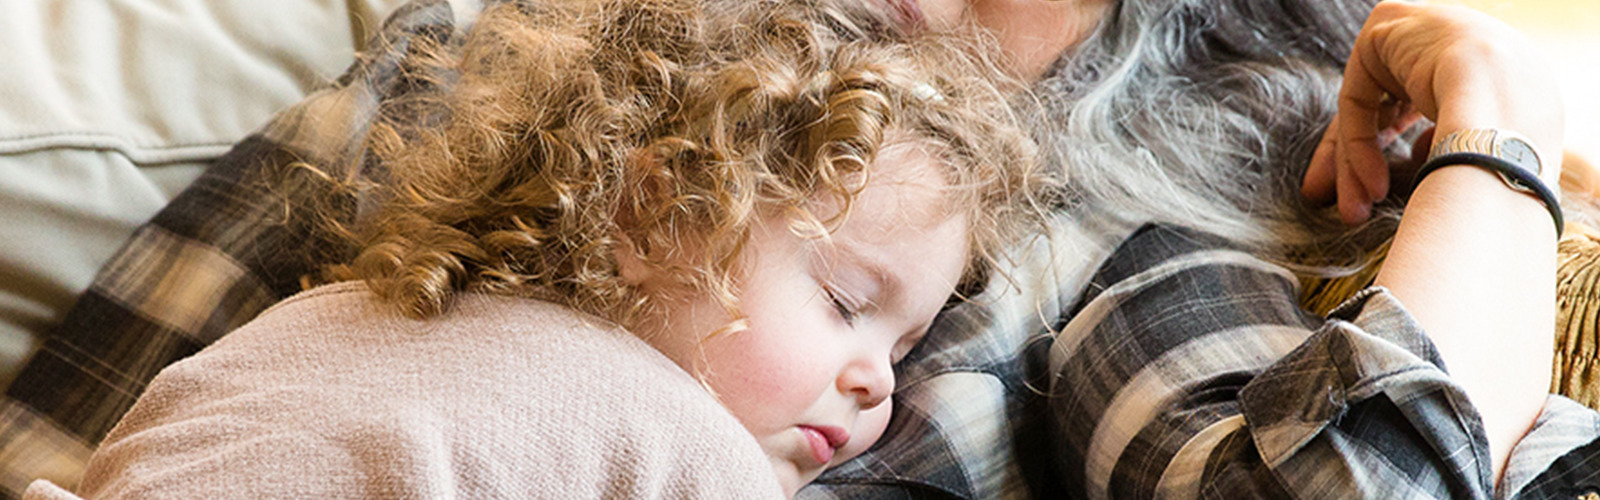 A young 3-year-old girl with curly strawberry blond hair is asleep on her mother's lap